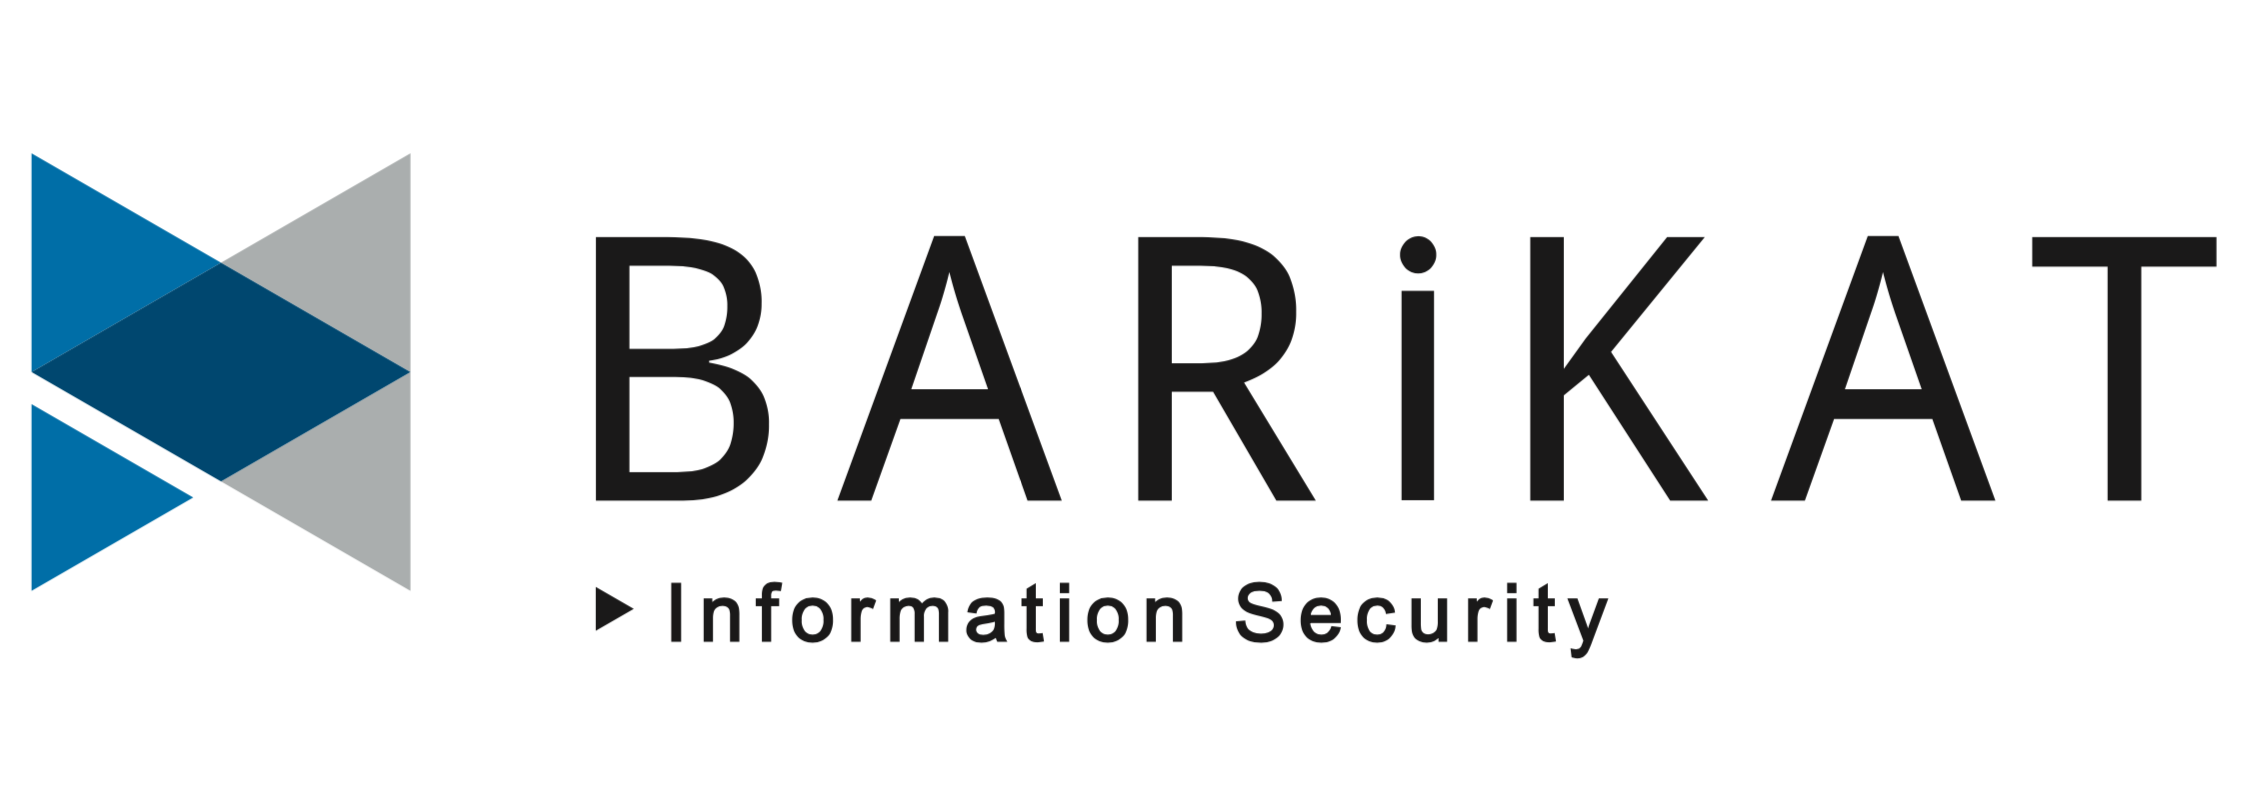 Barikat Information Security